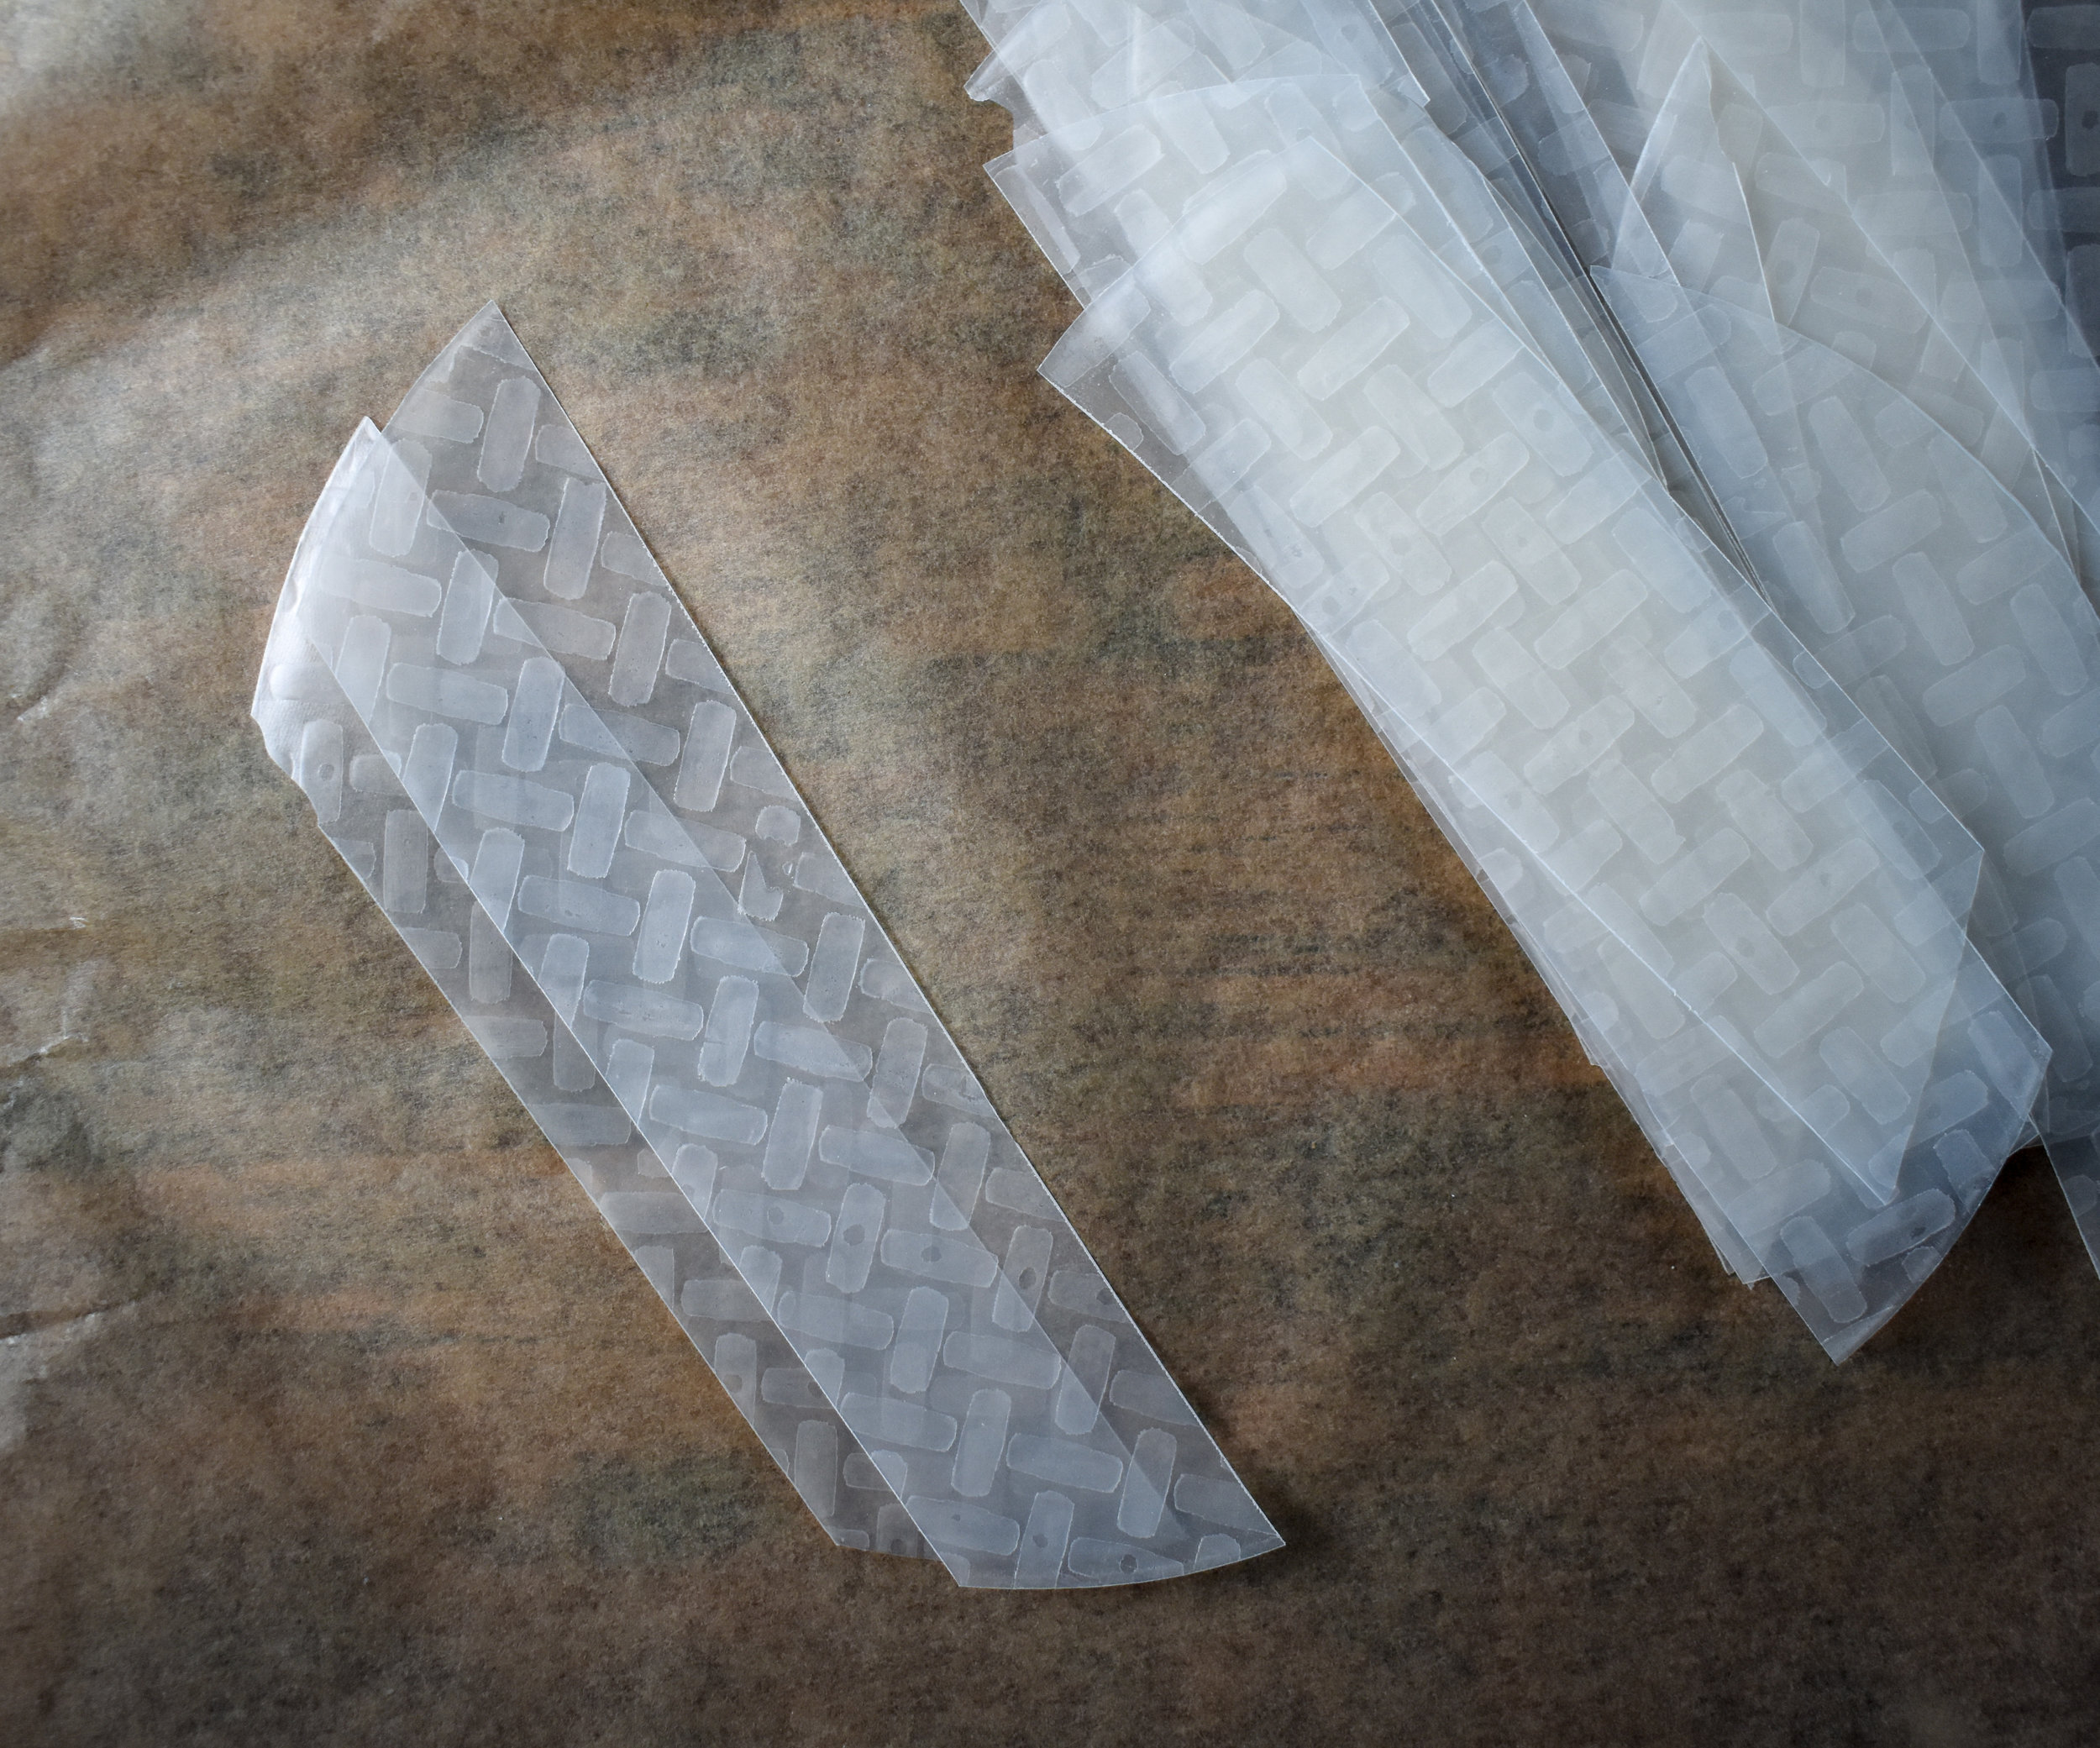 3. To form, find two like pieces of rice paper and stack them together. I like to stack all my pairs on a parchment sheet before wetting.